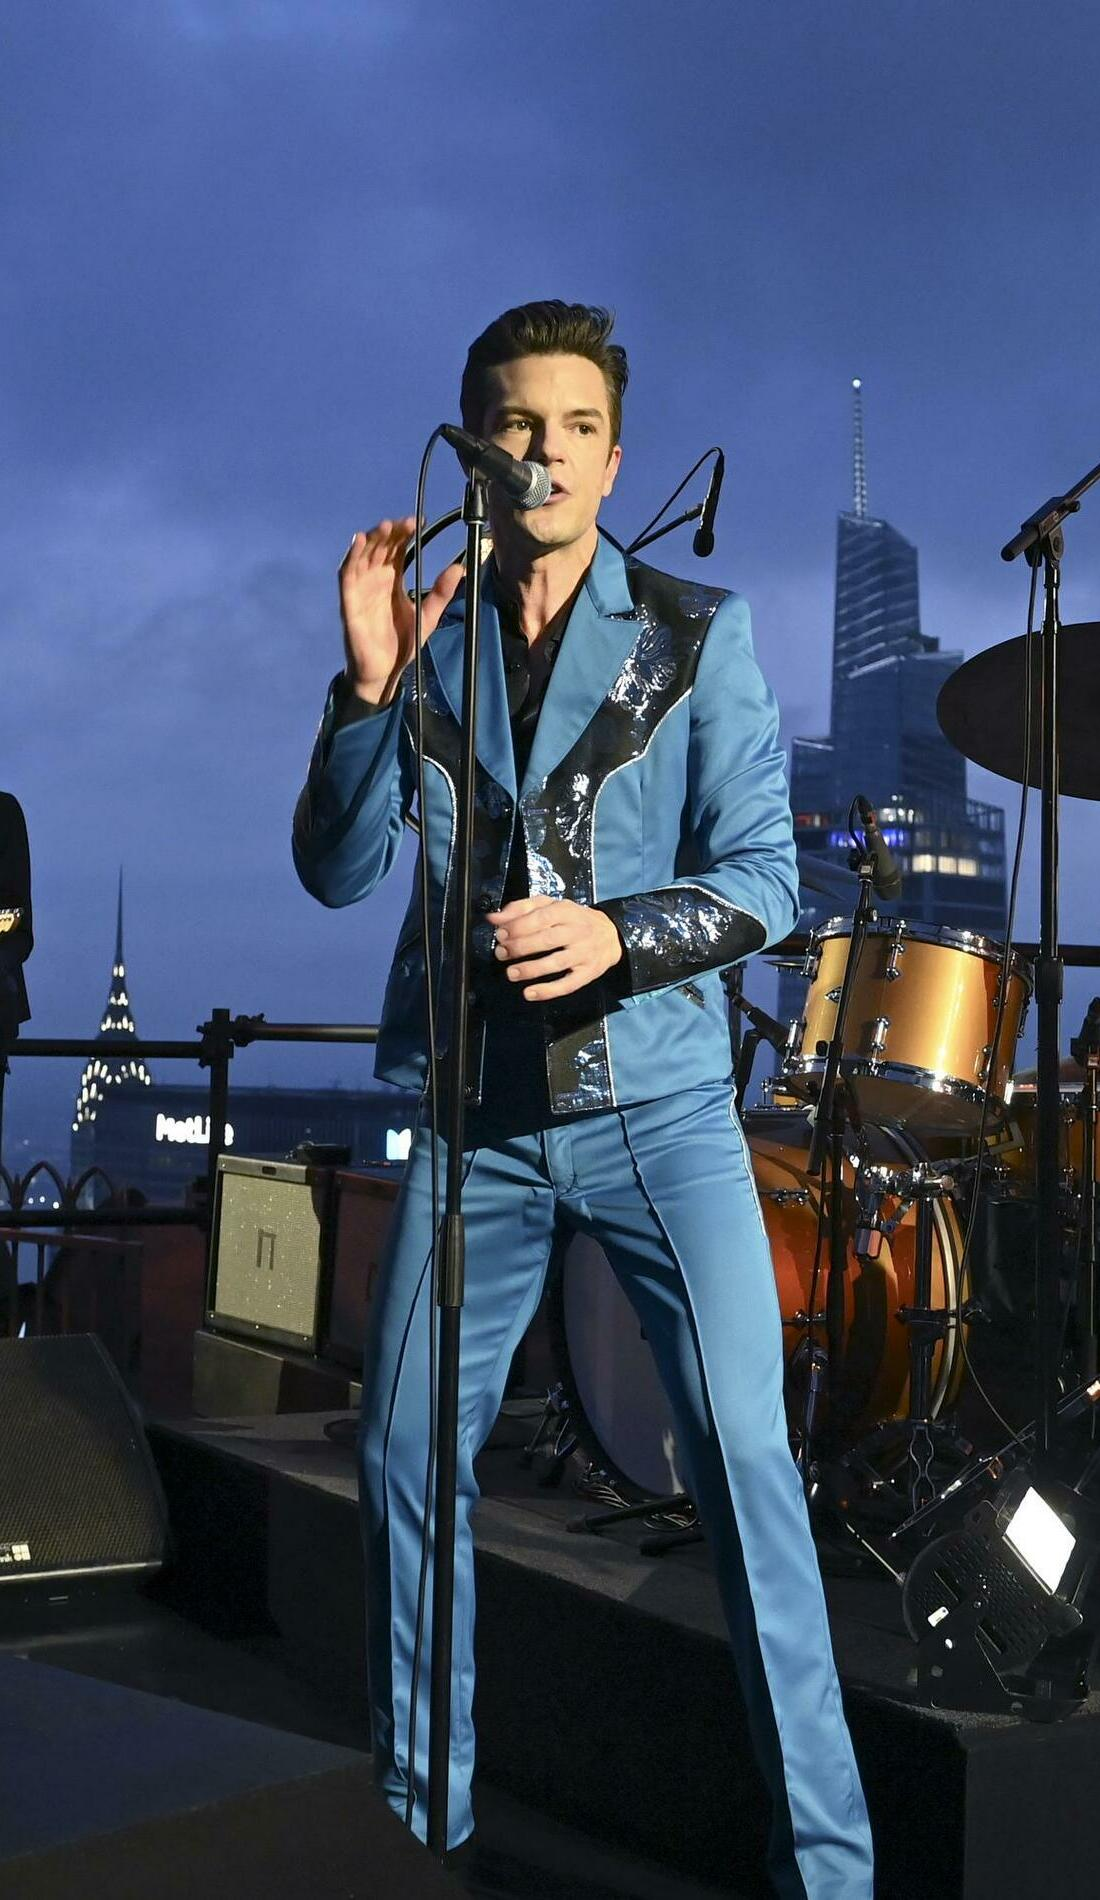 A The Killers live event